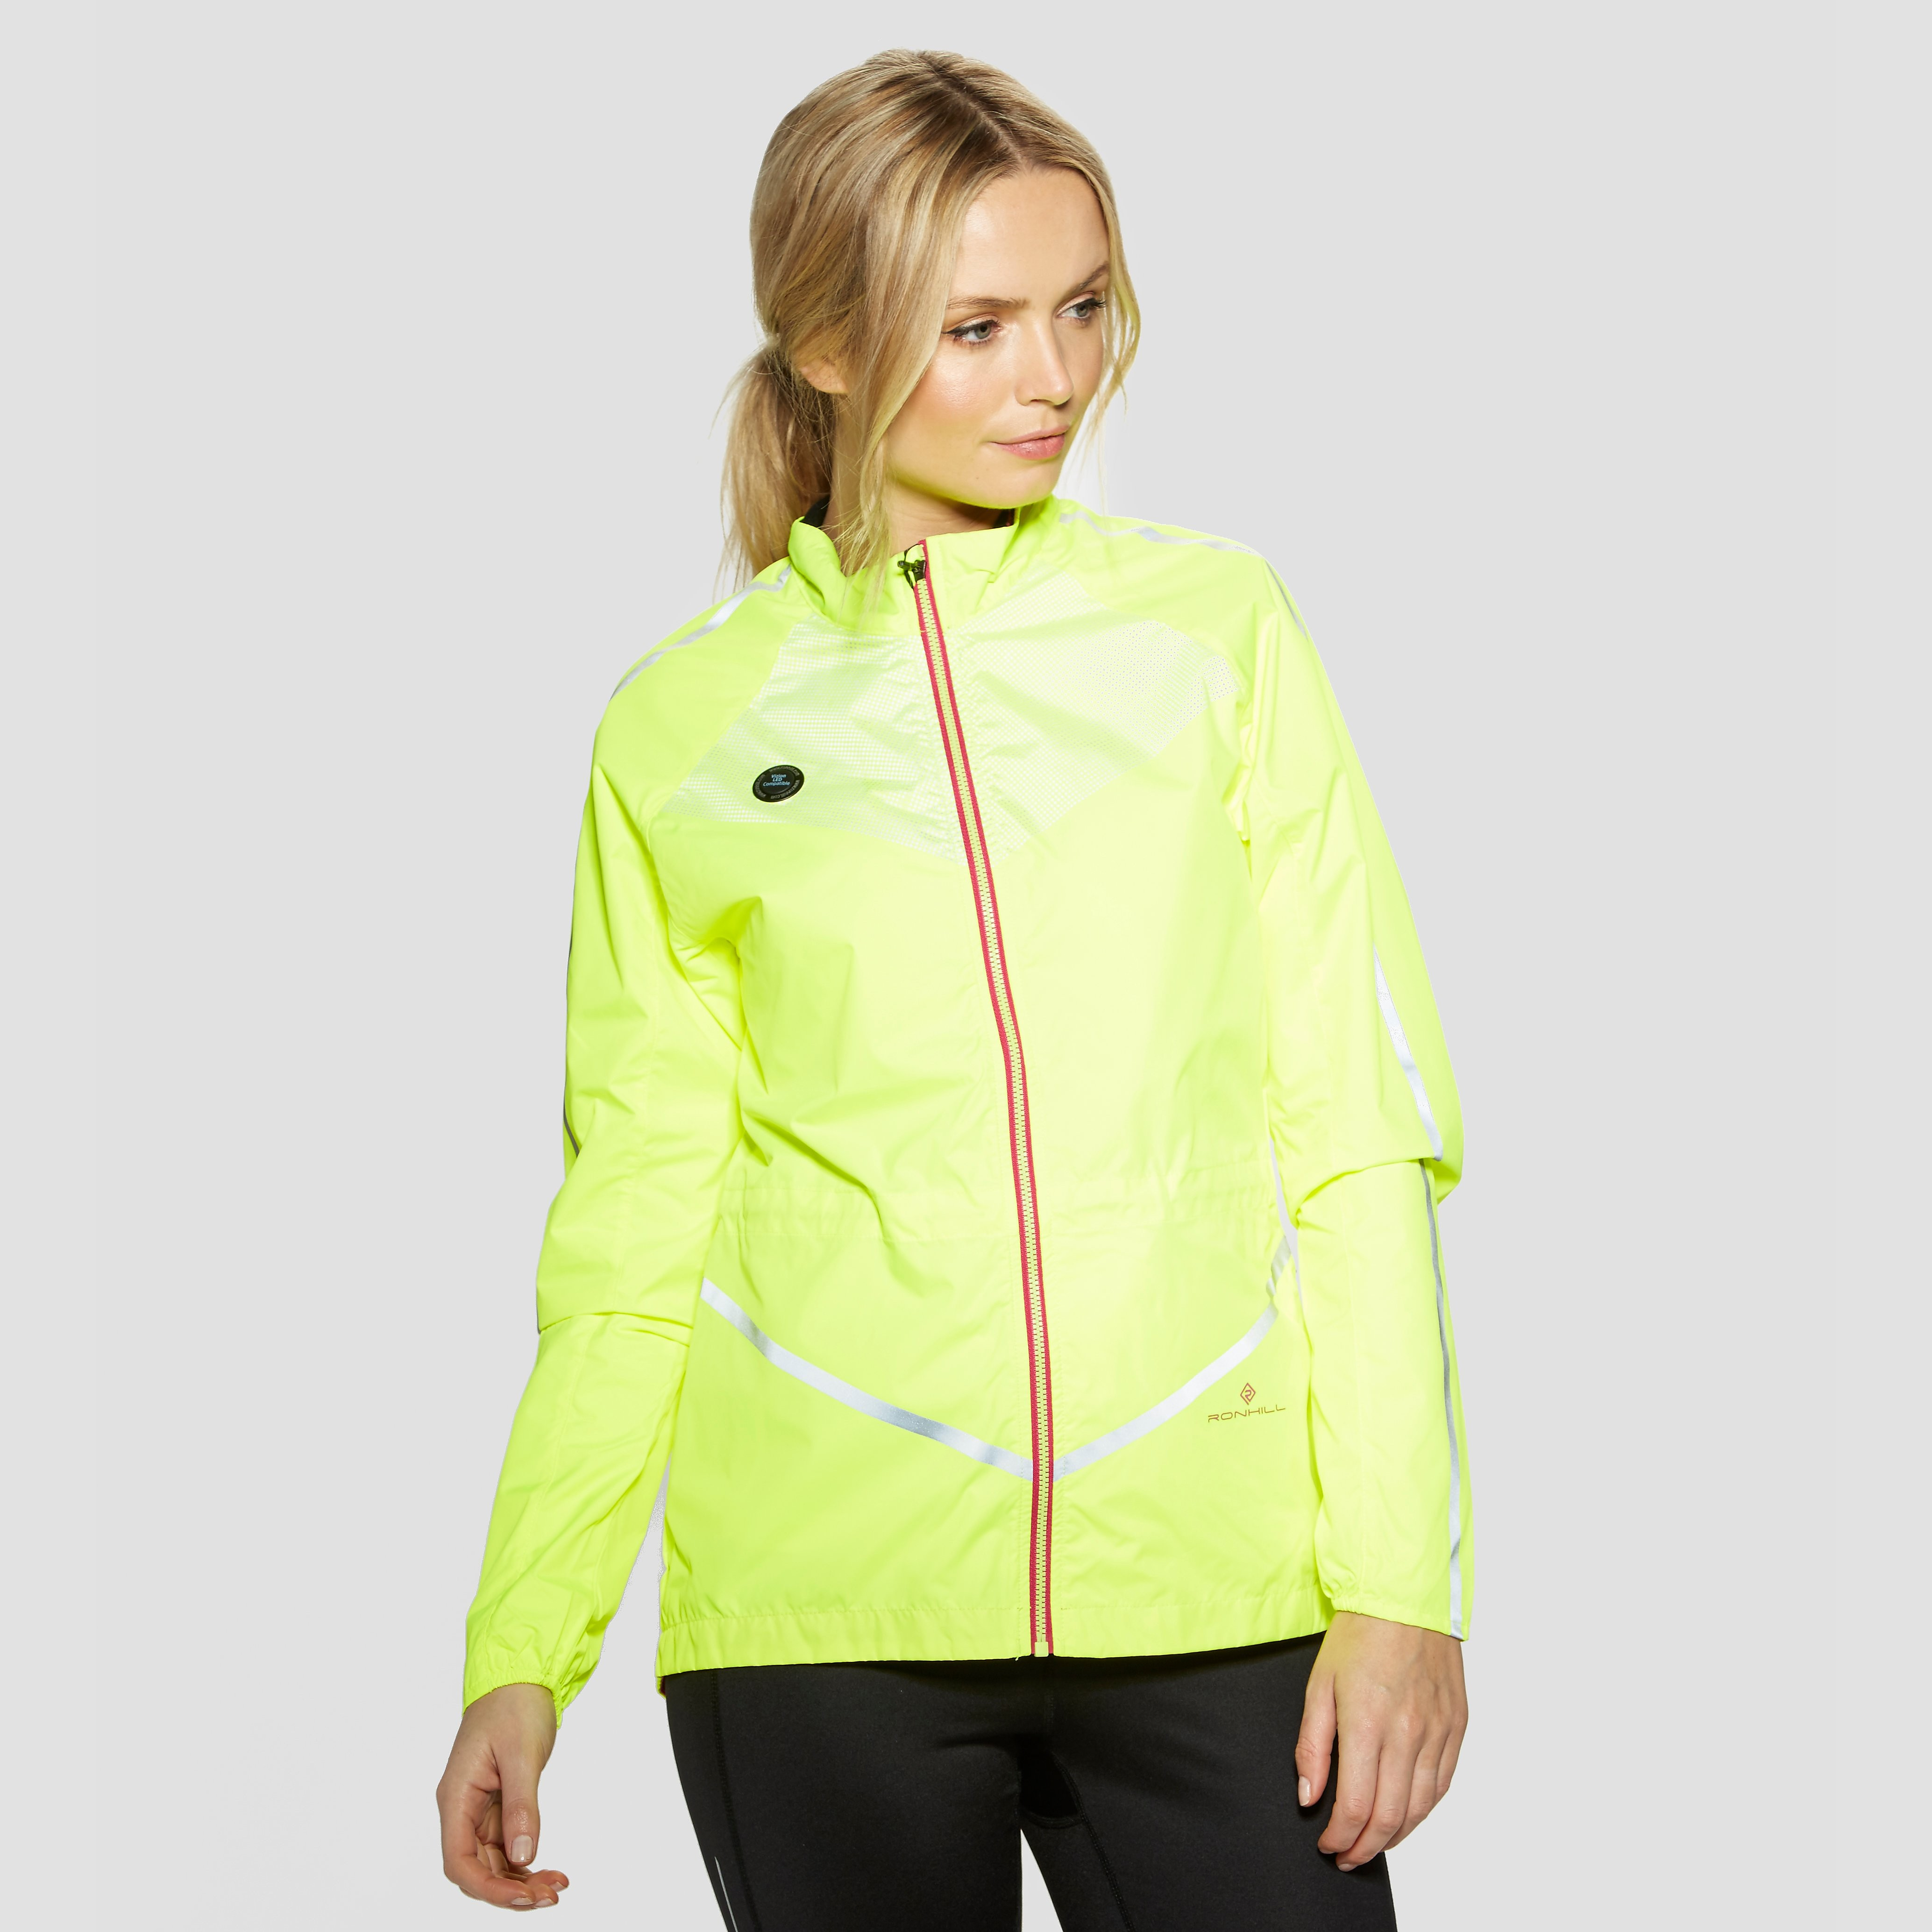 Ronhill Radiance Women's Jacket